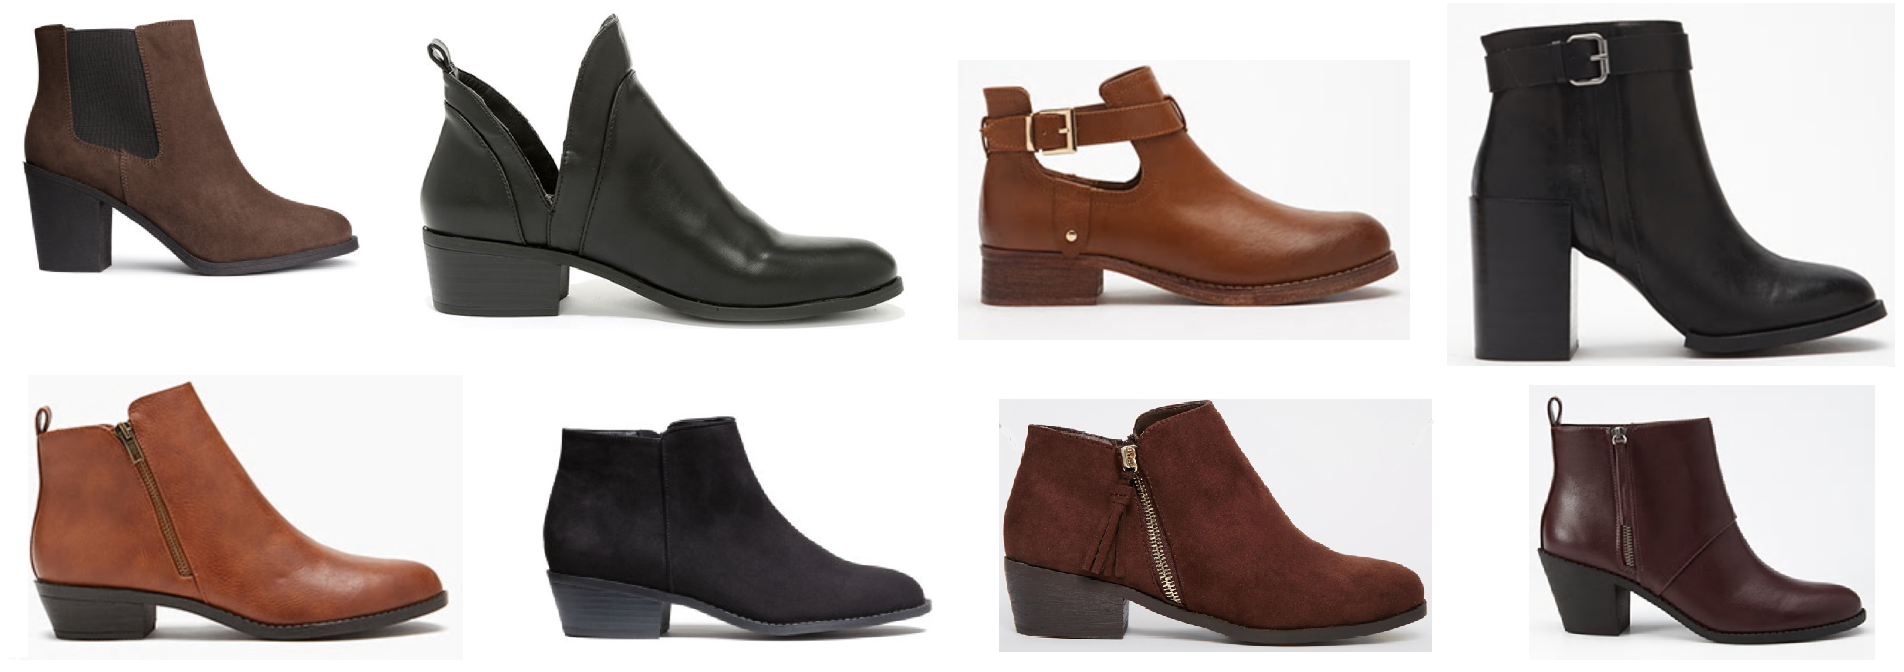 the best ankle boots 40 the look for less